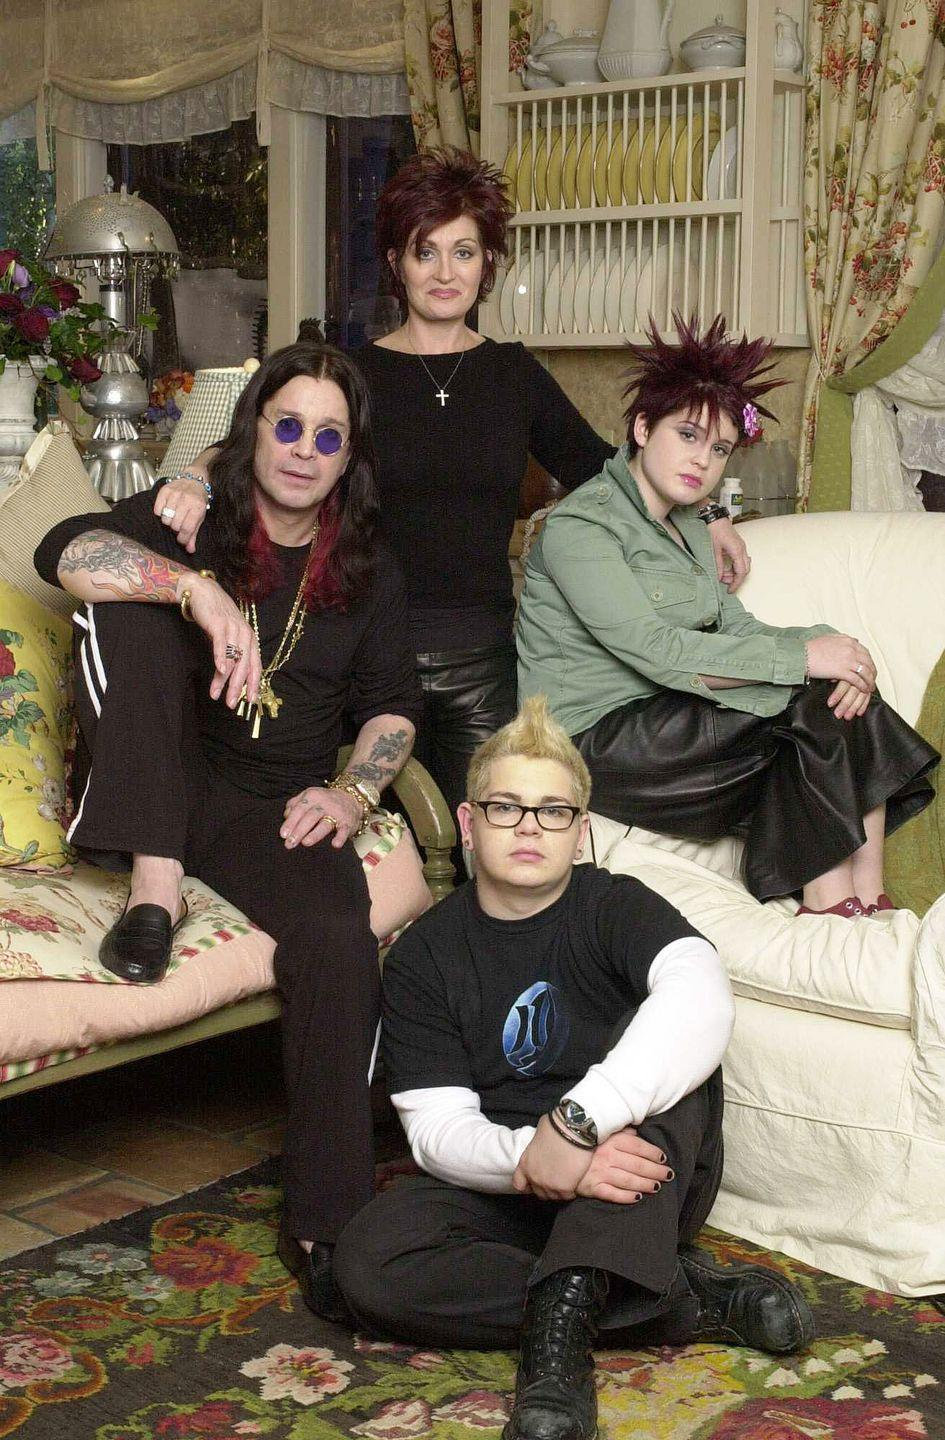 "<p>In 2002, before we even kept up with the Kardashians, there were the Osbournes – reality television's first royal family. For four seasons, cameras gave viewers a revealing look inside the home of rocker Ozzy Osbourne and his wife Sharon, as they to raised their two rebellious teenagers. The MTV series was one of the first of its kind, opening the door for many other celebrity ""fly on the wall"" reality shows.</p>"